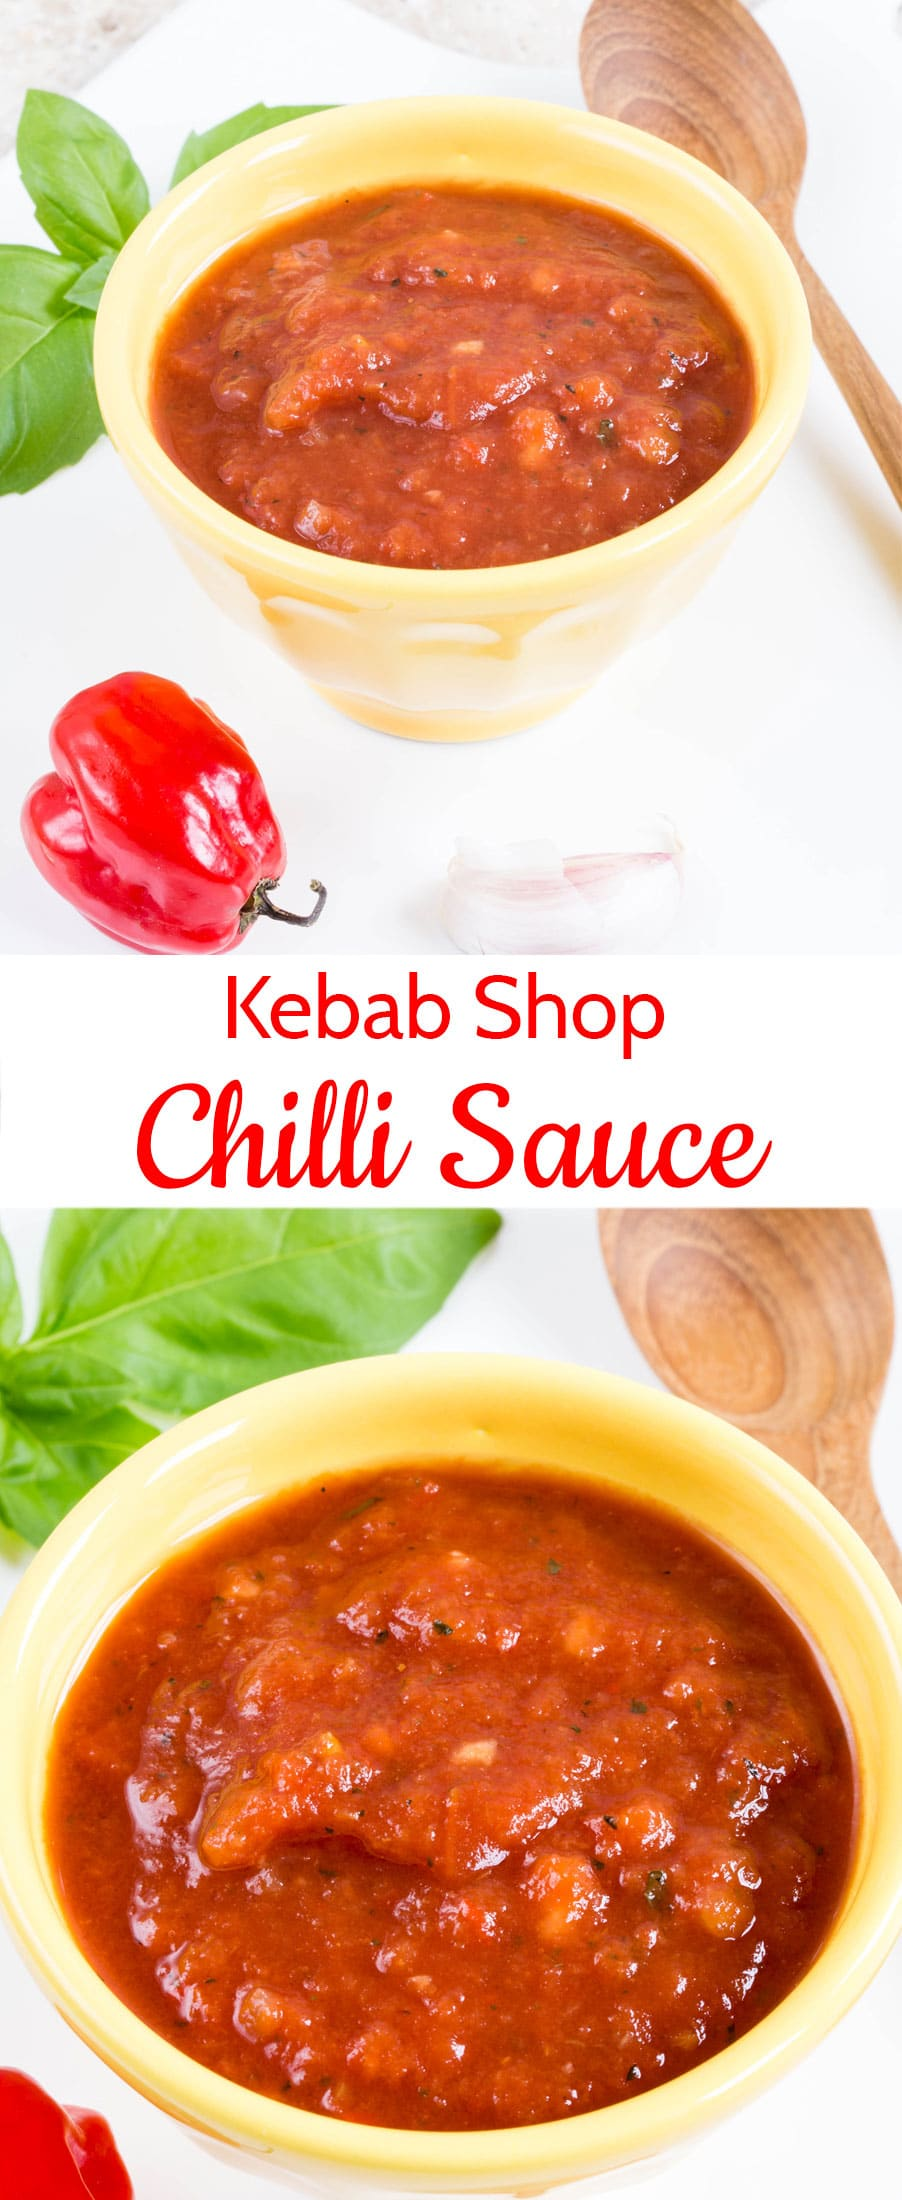 Kebab shop chilli sauce in a yellow bowl with a bright red pepper beside it and a close up of chili sauce in a red bowl with a text overlay